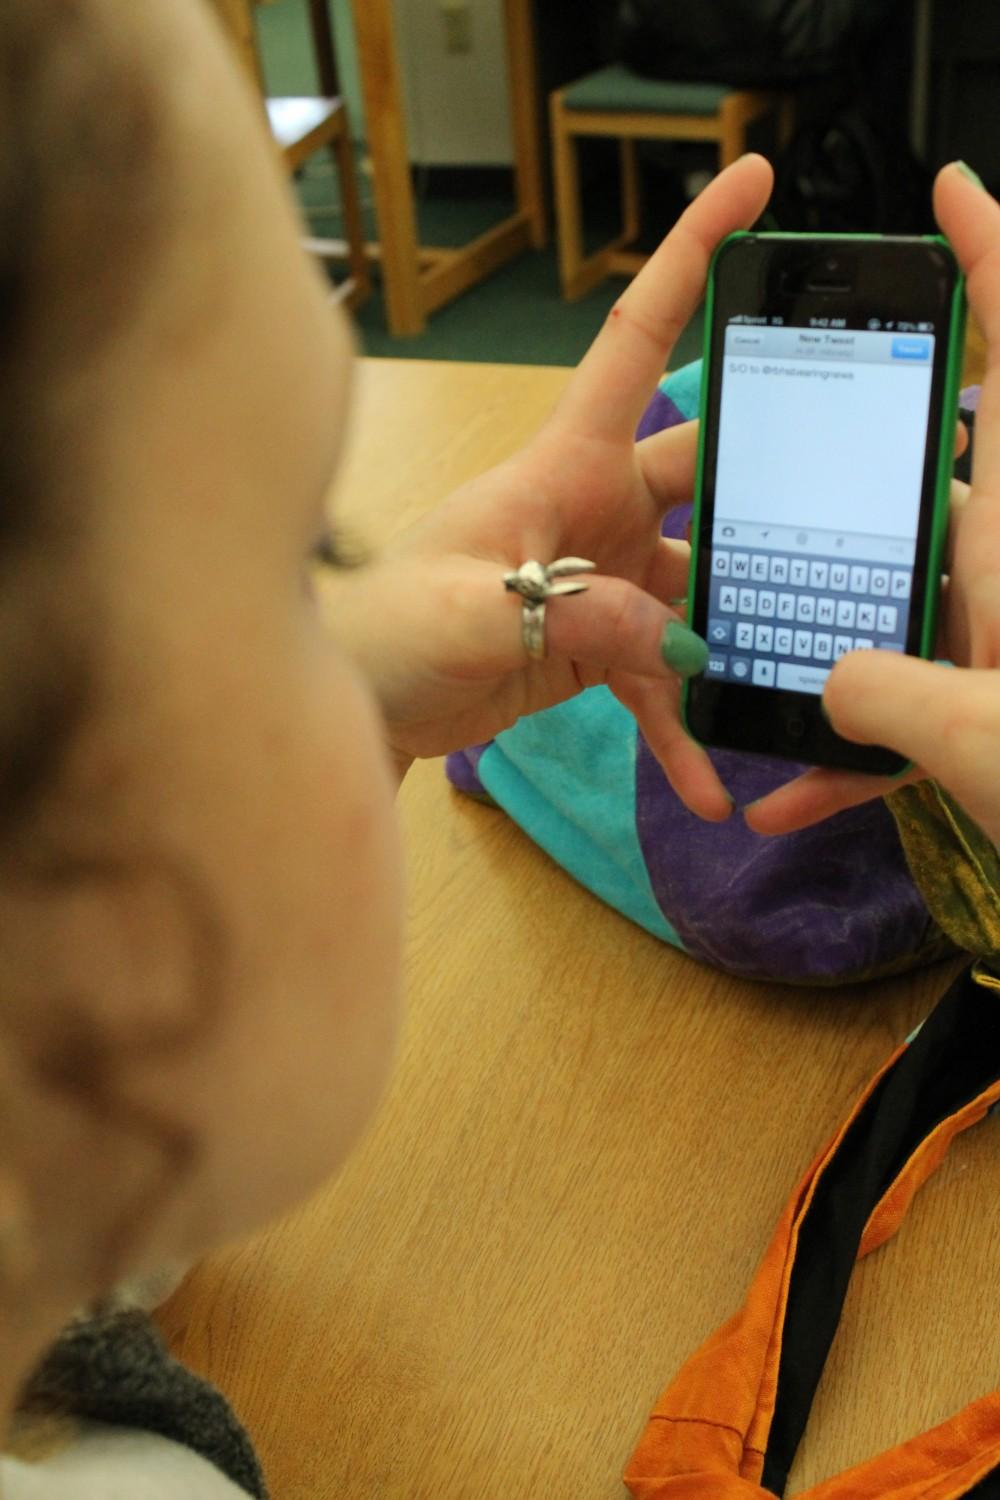 Junior Mariah Brady looks at her phone while she prepares to send a tweet. She allows people to view her sporadic personality through her Twitter profile. Photo by Maddy Jones